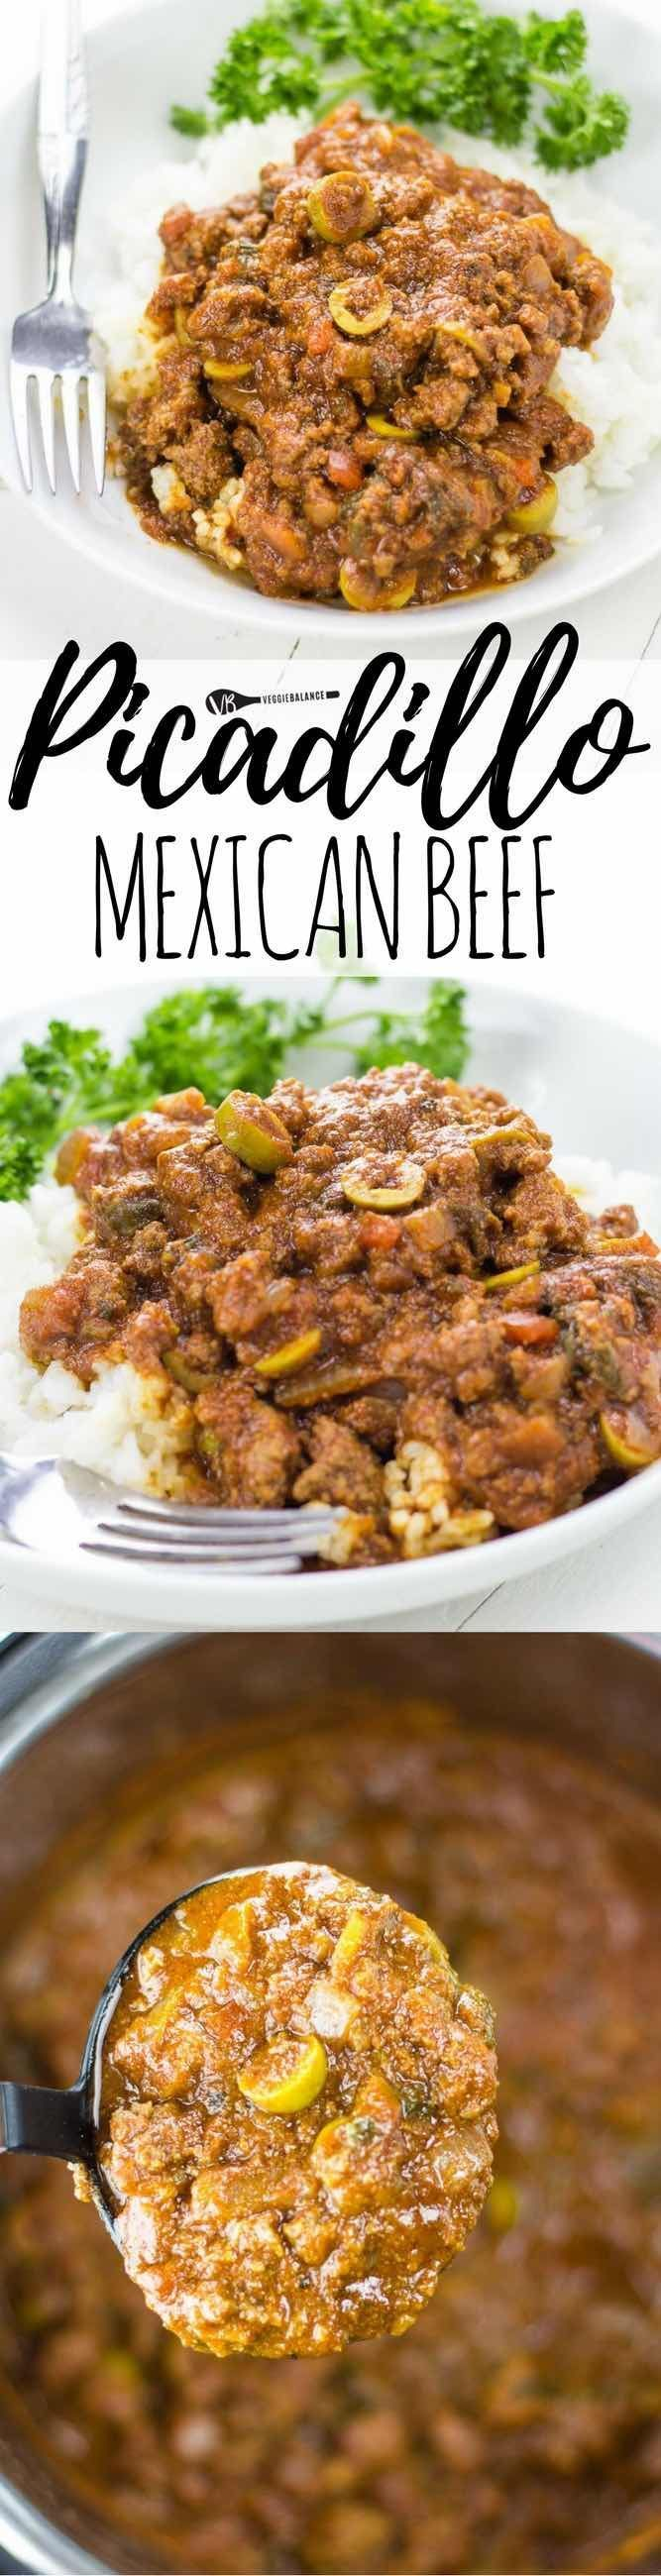 Picadillo Mexican Beef recipe made so easy in one pot and served over rice. Classic and total comfort food great for a crowd. Total must-have to add to the weekly meals! (Gluten Free, Dairy Free)